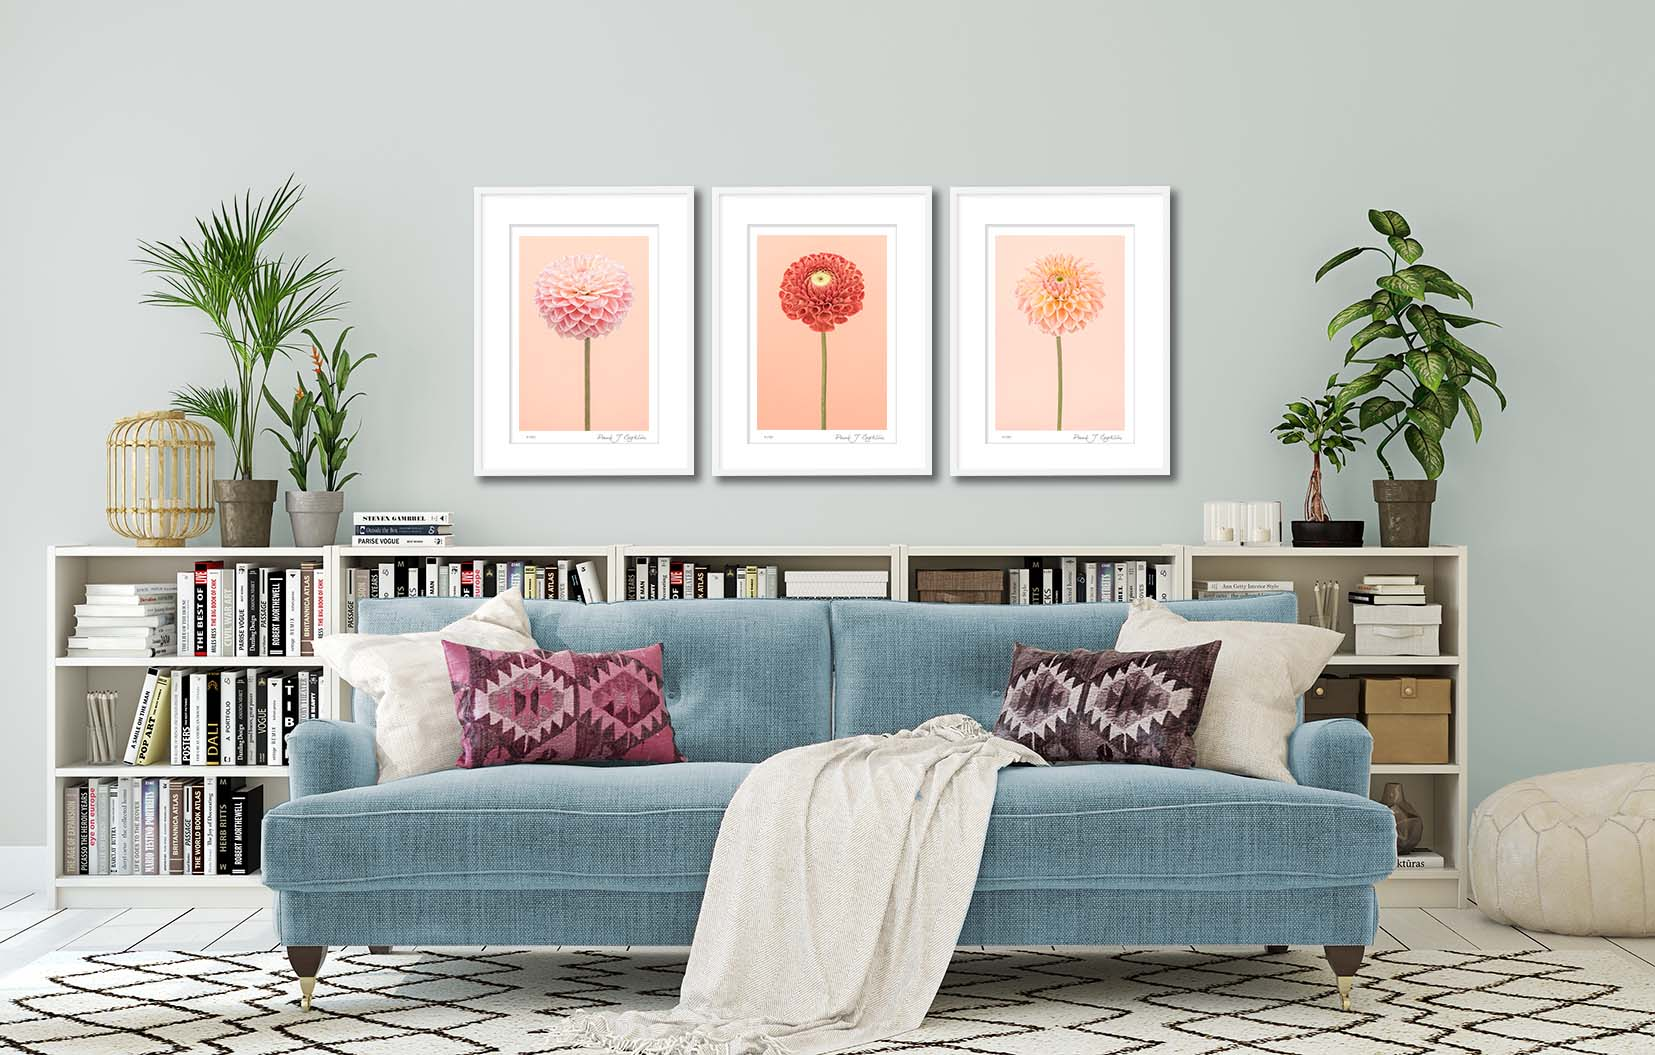 Three limited edition floral prints of dahlias. This photographic prints are part of a series of botanical studies by award-winning photographer Paul Coghlin FBIPP.